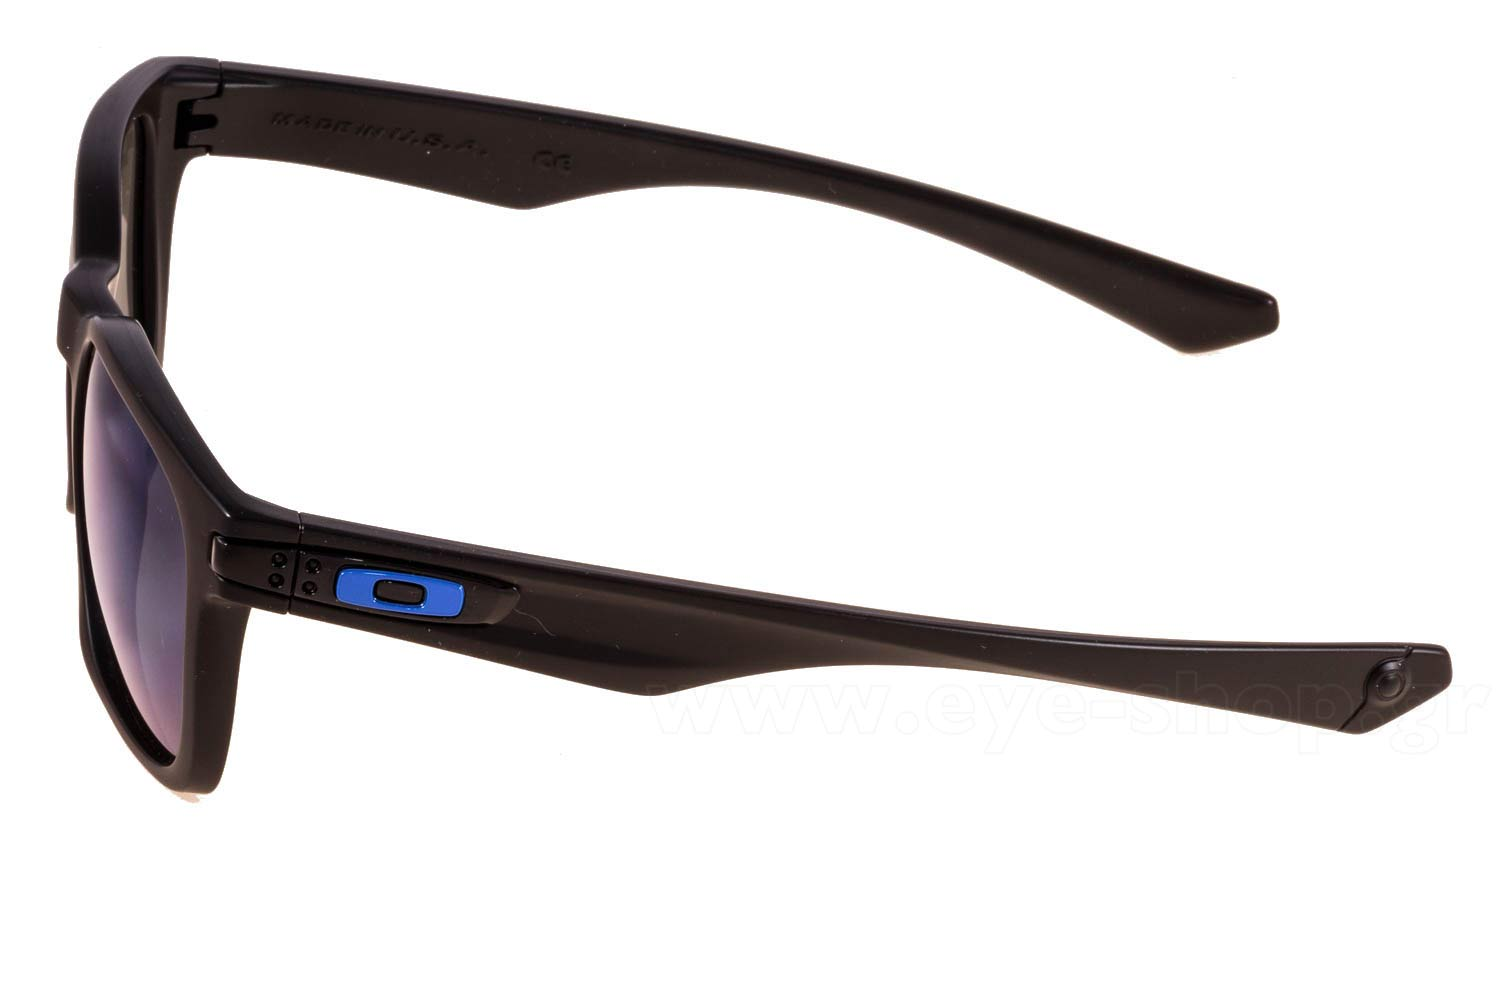 fb32b1969ba Oakley model GARAGE ROCK 9175 color 16 MotoGP Matte Blk Ice Iridium  Polarized